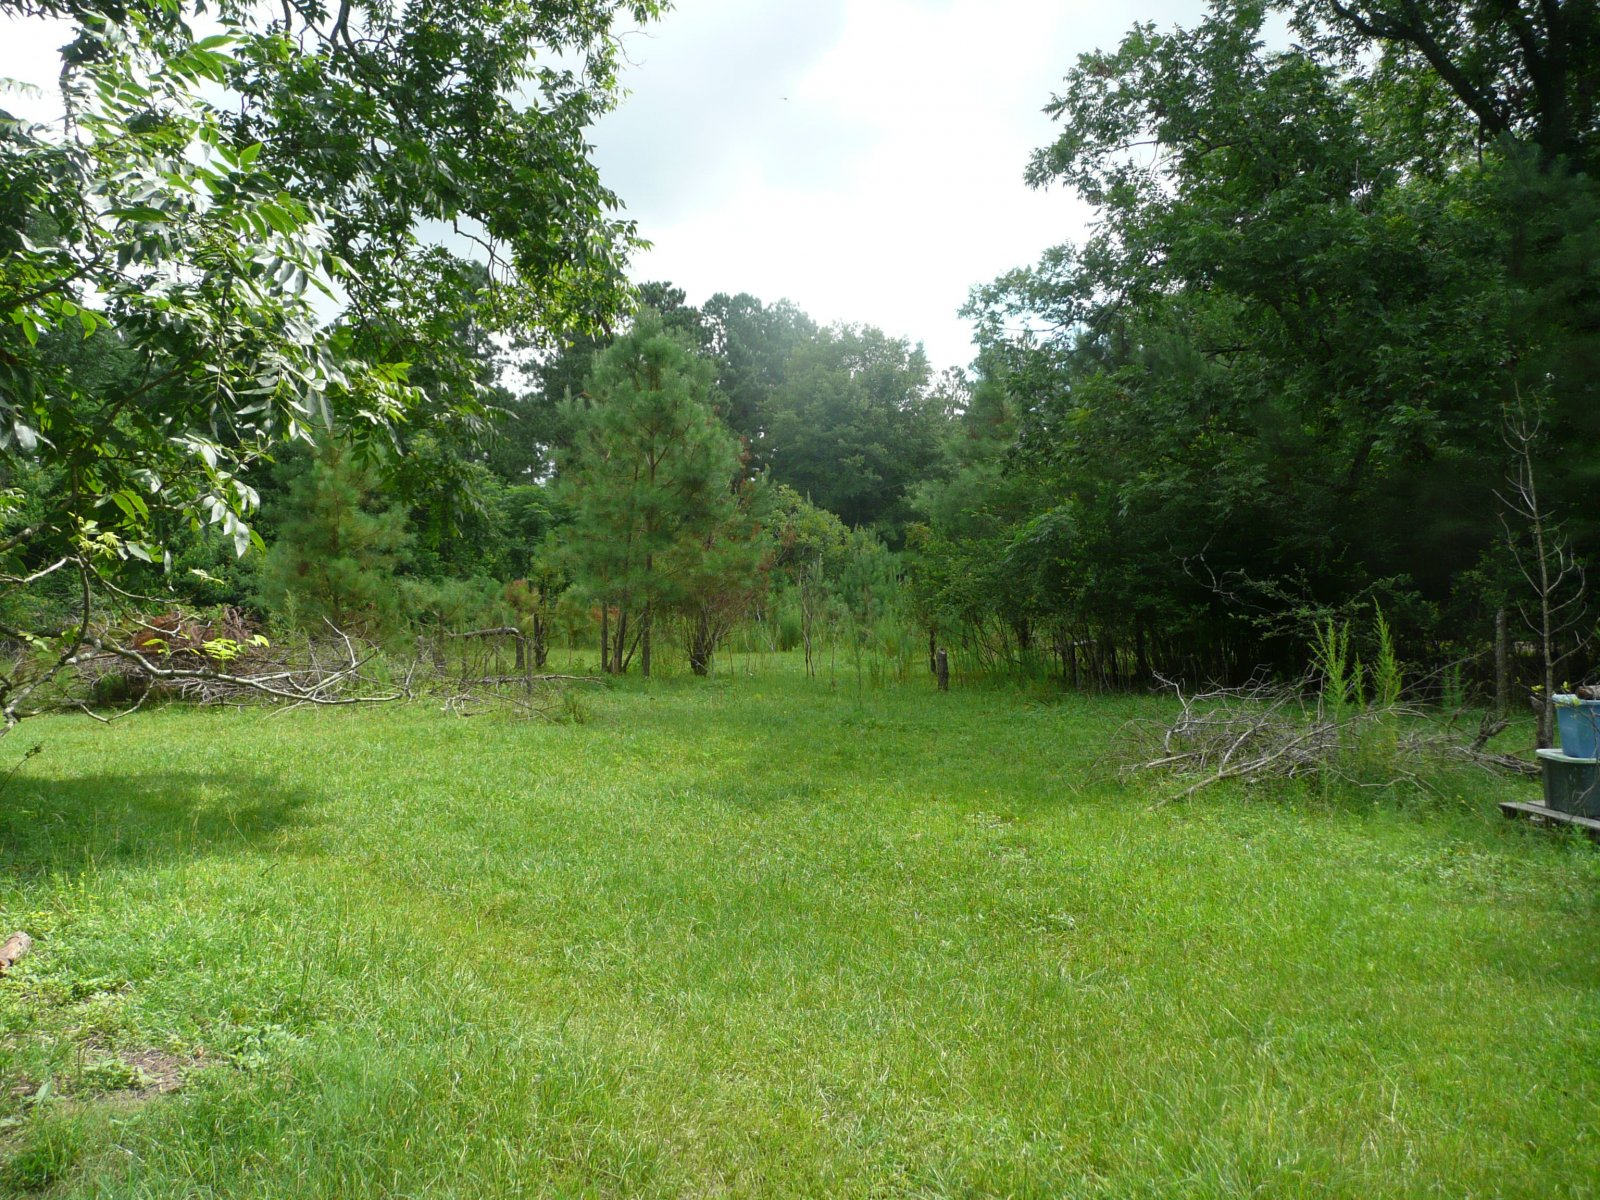 Mobile home for sale in Salley SC with lots of land on 2.9 acres